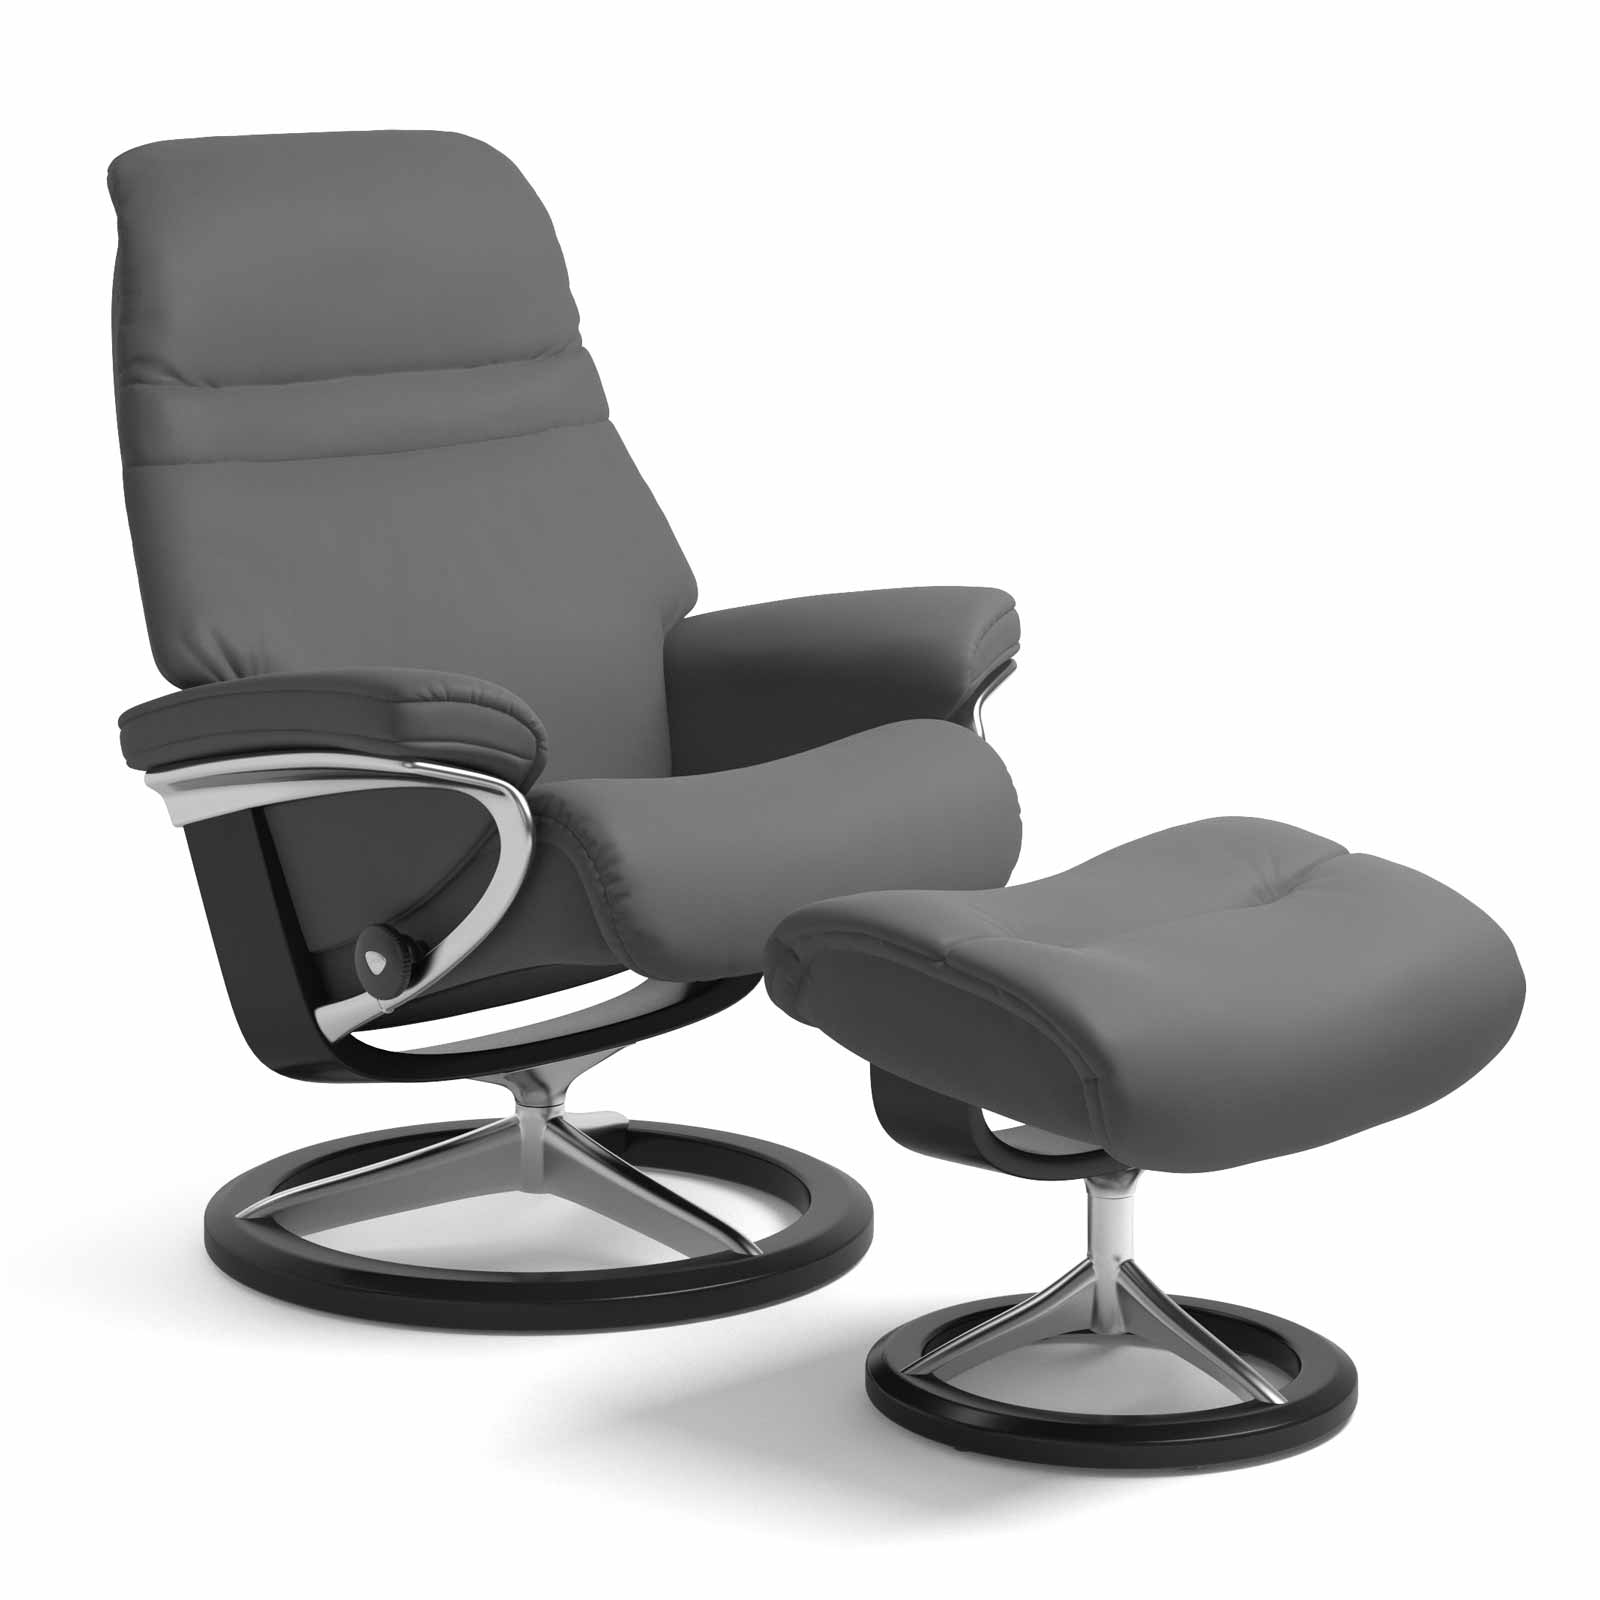 Stressless Sessel Mit Hocker Stressless Sessel Sunrise Signature Batick Grau Mit Hocker